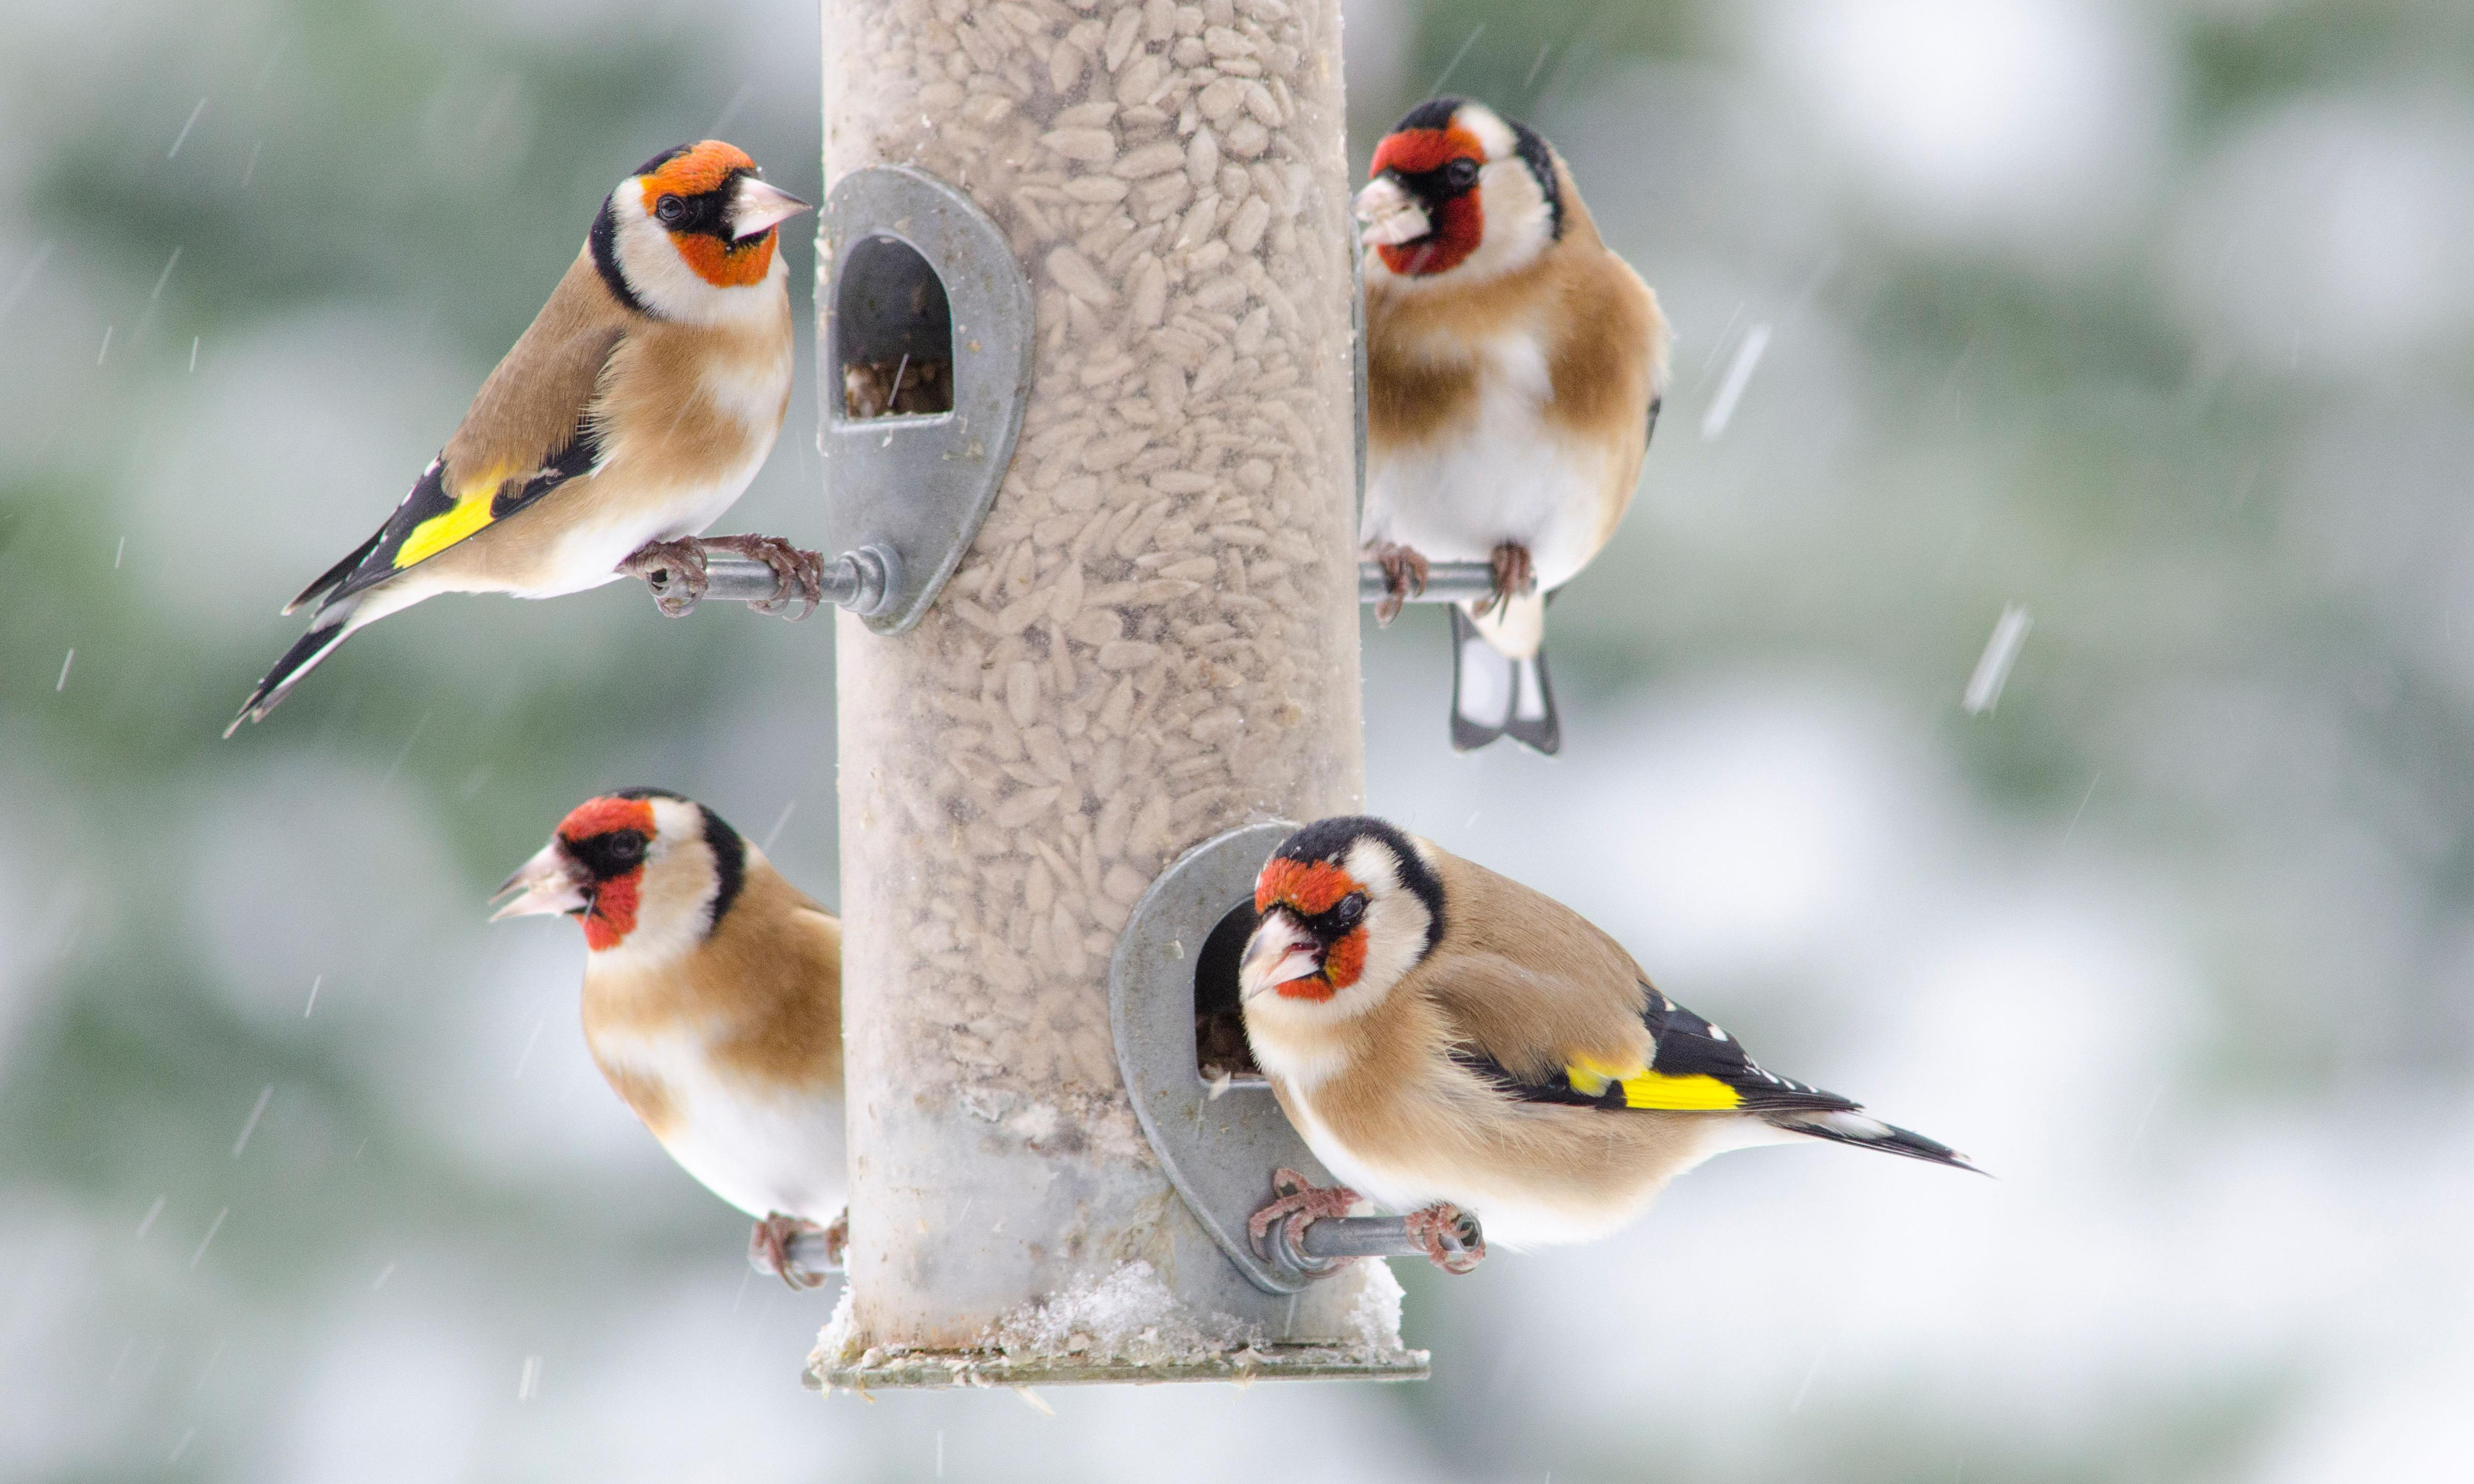 Garden feeders are supporting rising numbers of urban birds